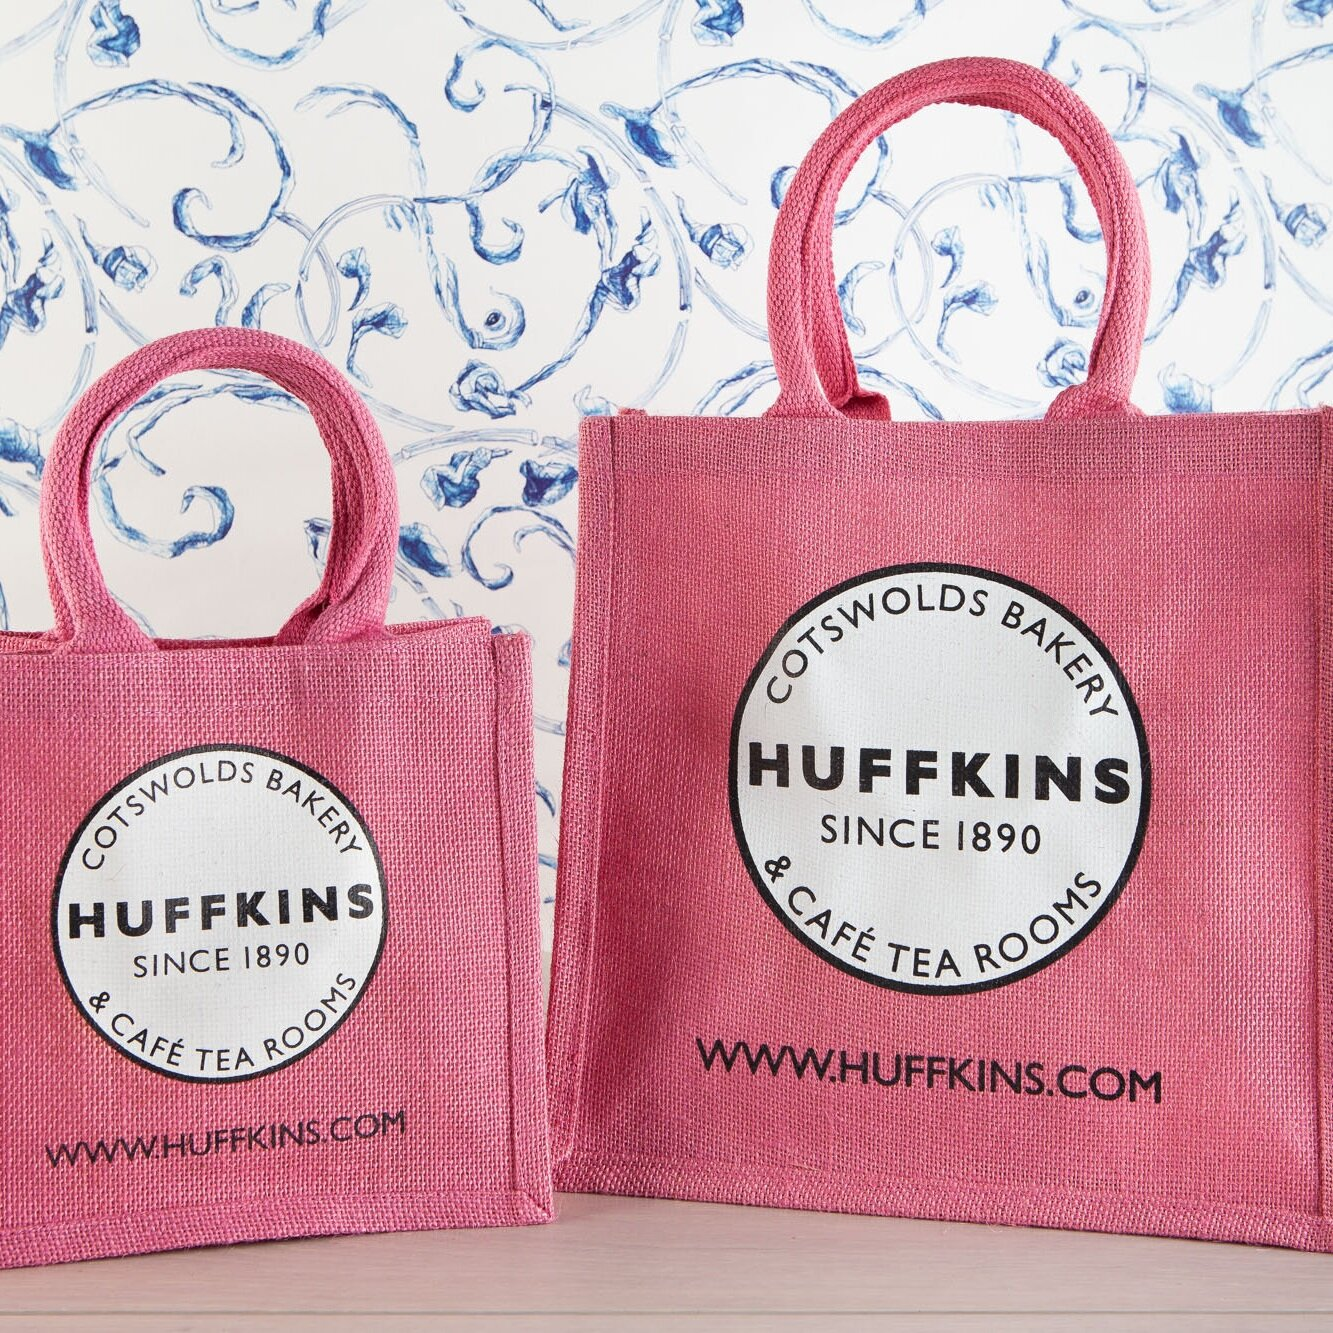 Customisable gift bags - Build your own